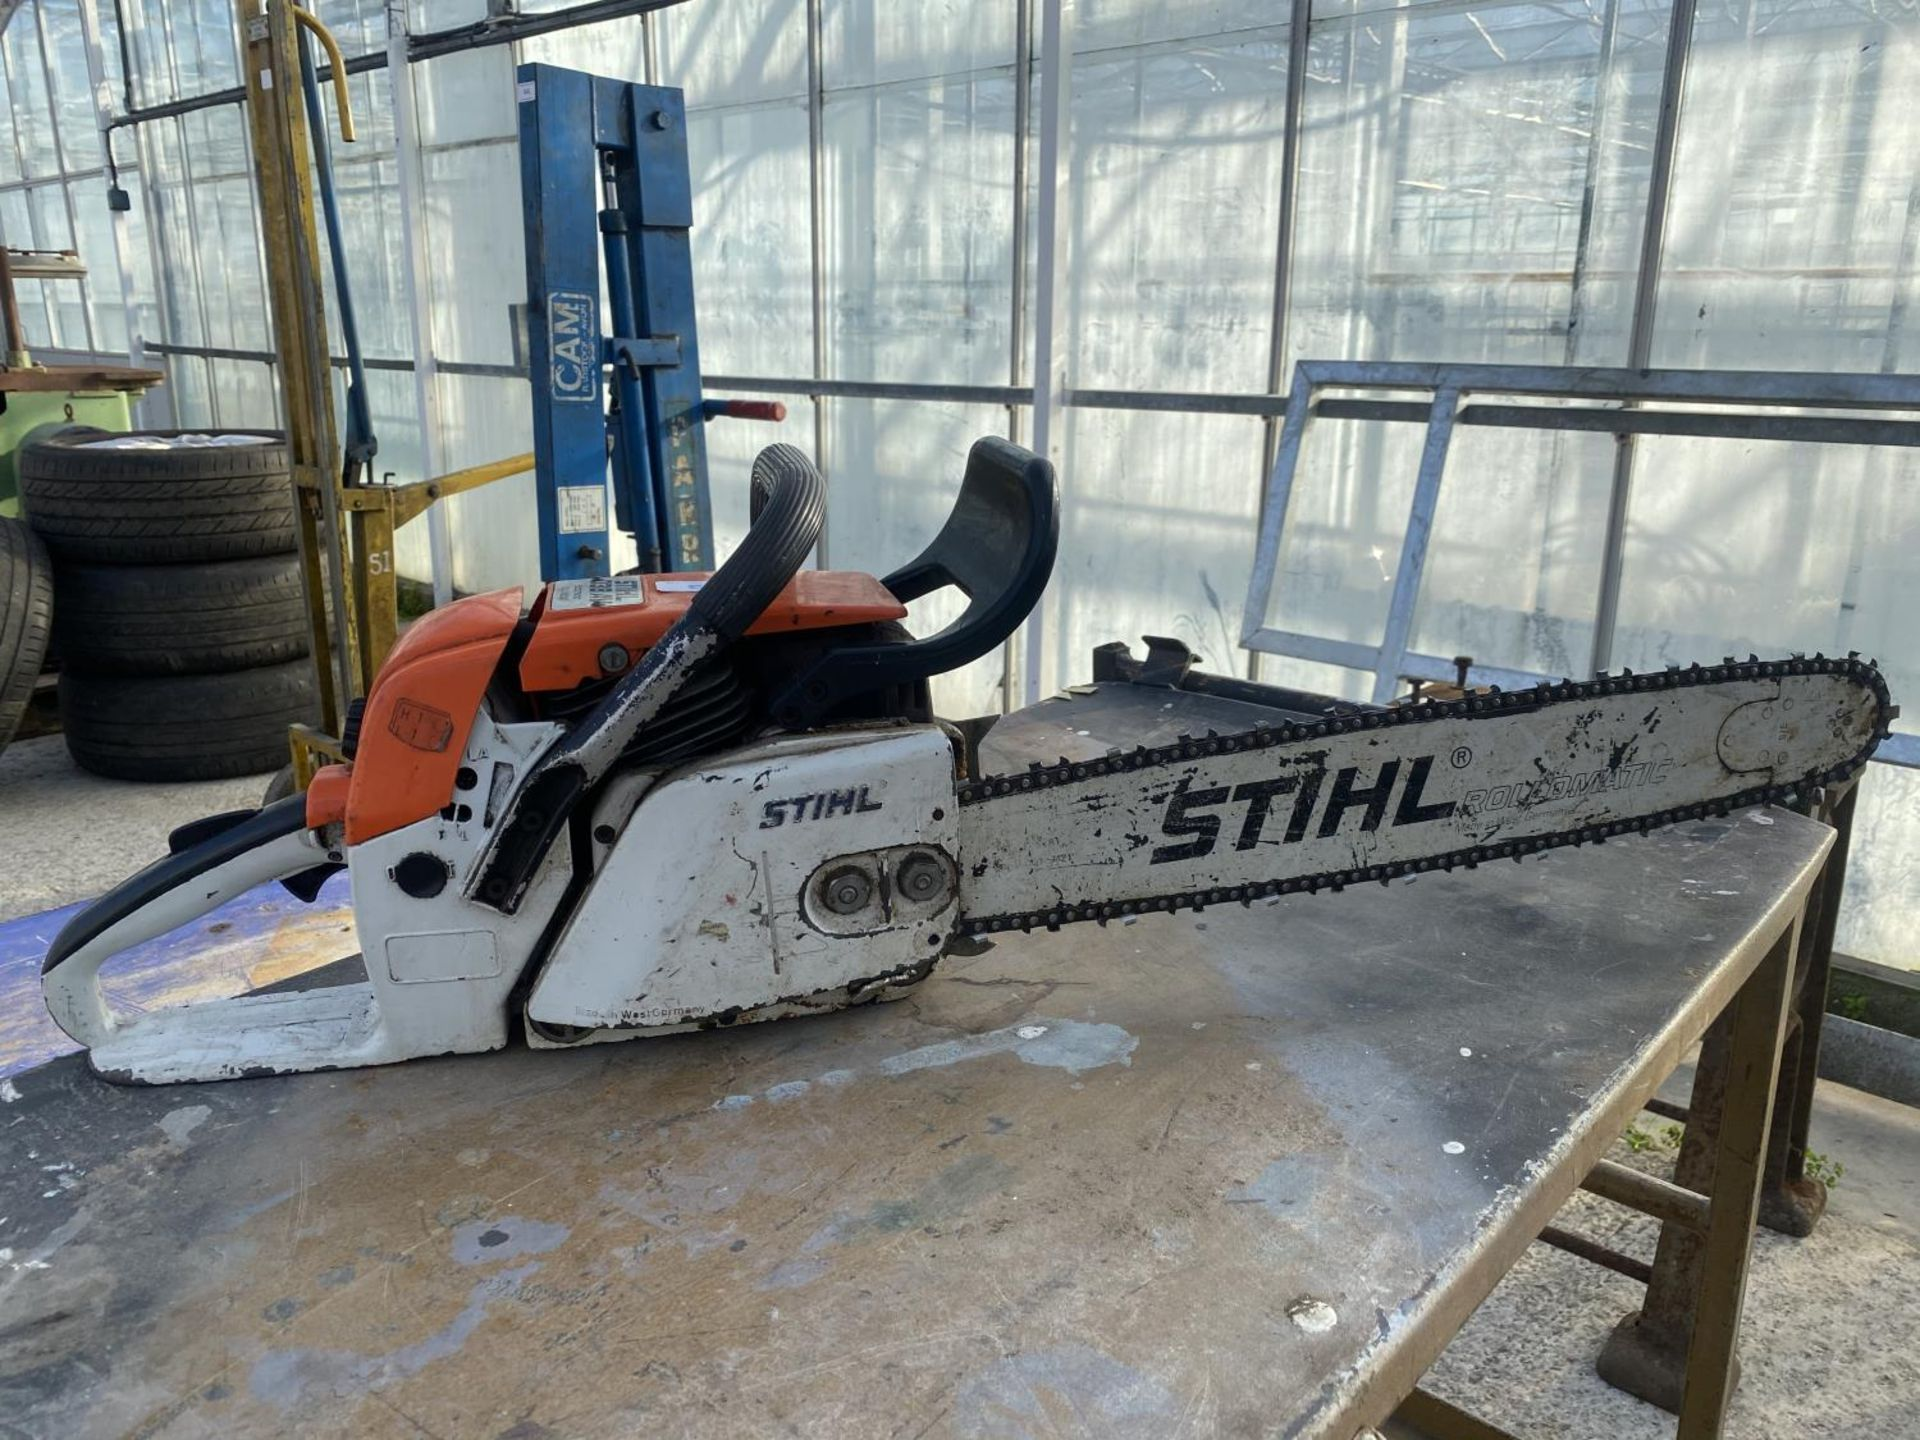 A STHIL 038 AV ELECTRONIC QUICKSTOP CHAIN SAW NO VAT